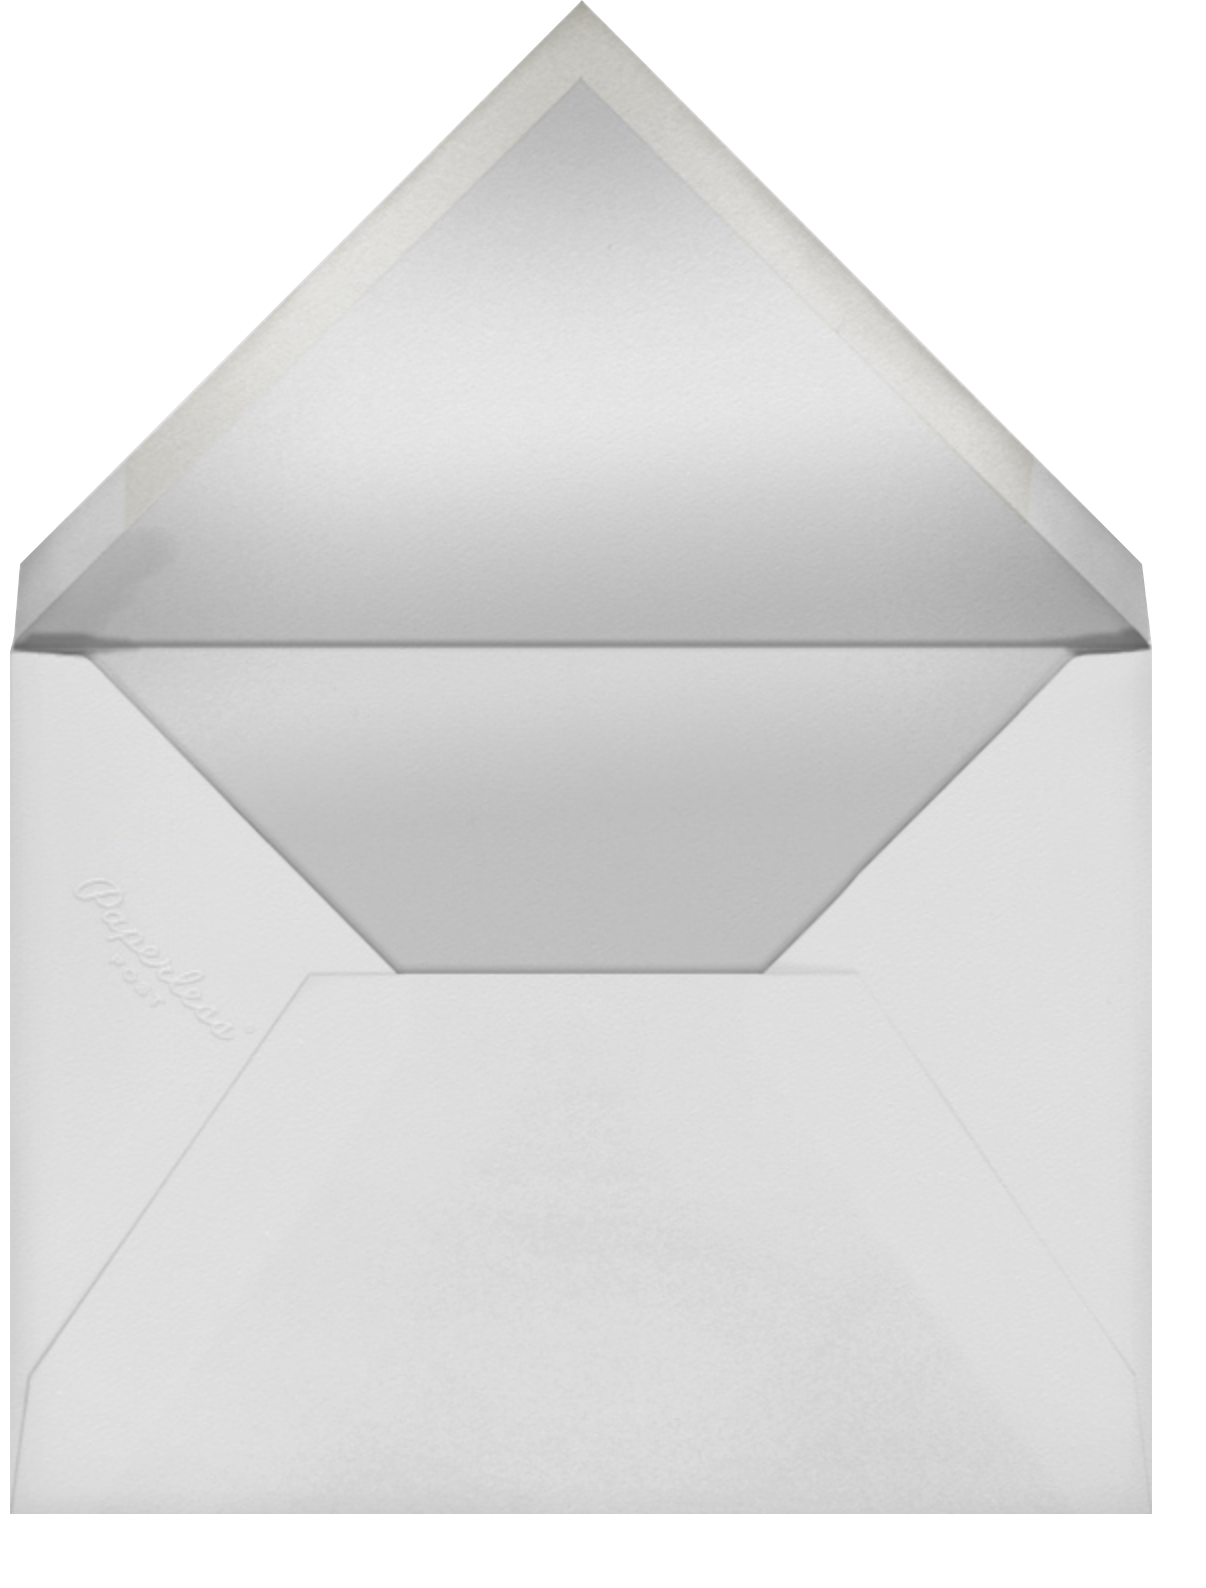 Moscow Square - Paperless Post - Moving - envelope back